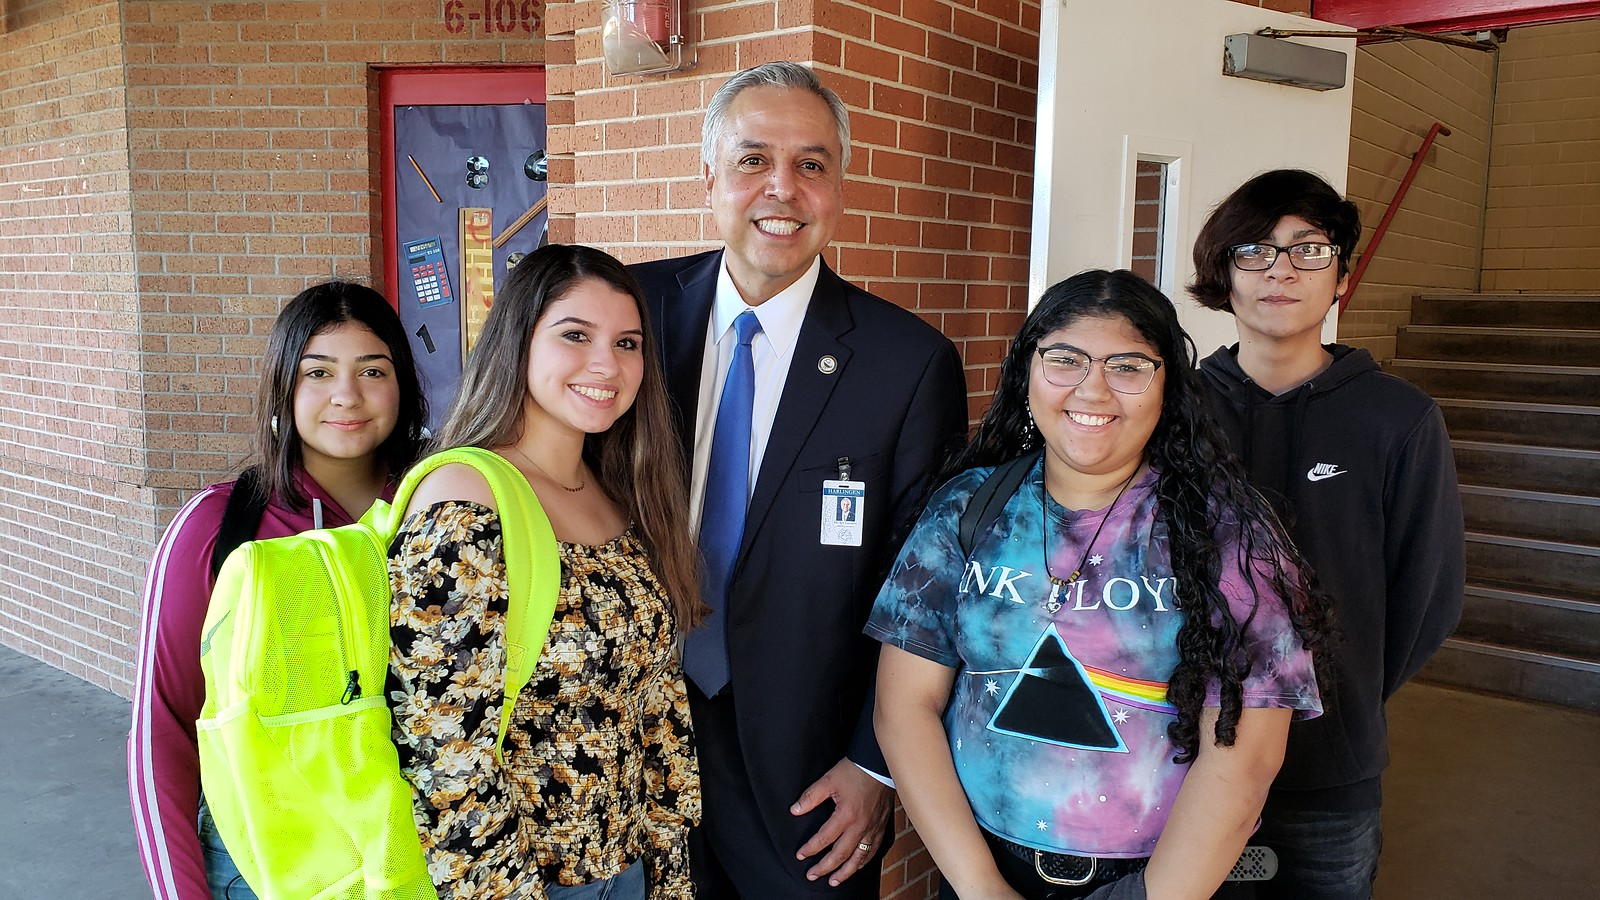 HCISD welcomes students to the 2019-20 school year